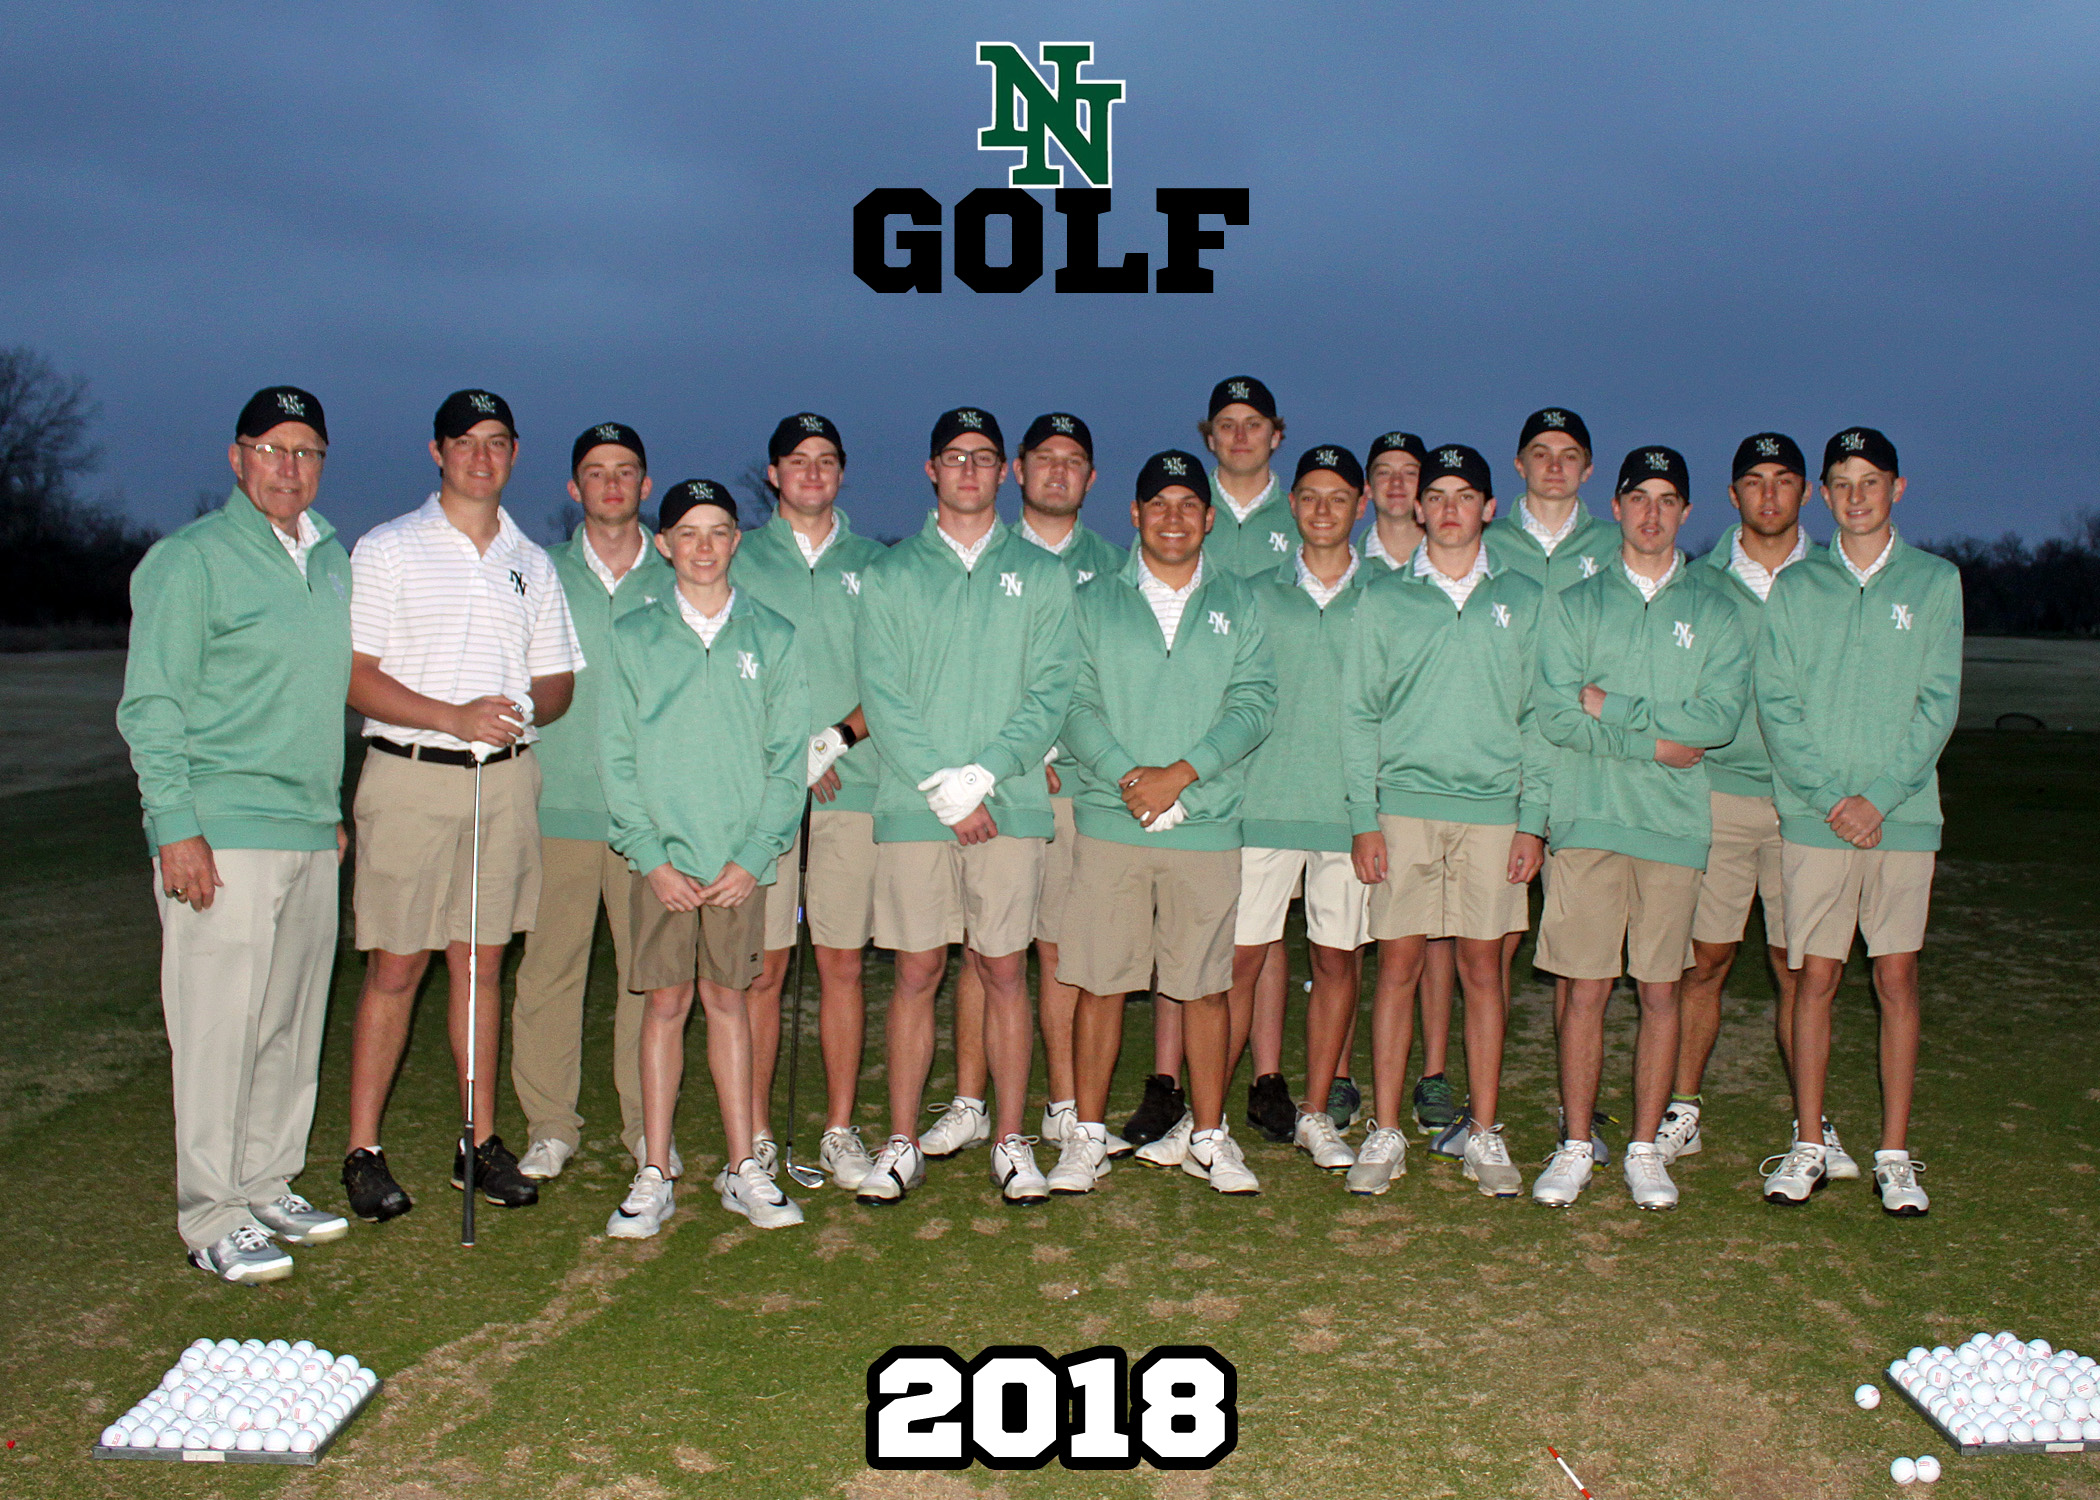 NN golf low light with flash and date corrected 5x7_.jpg